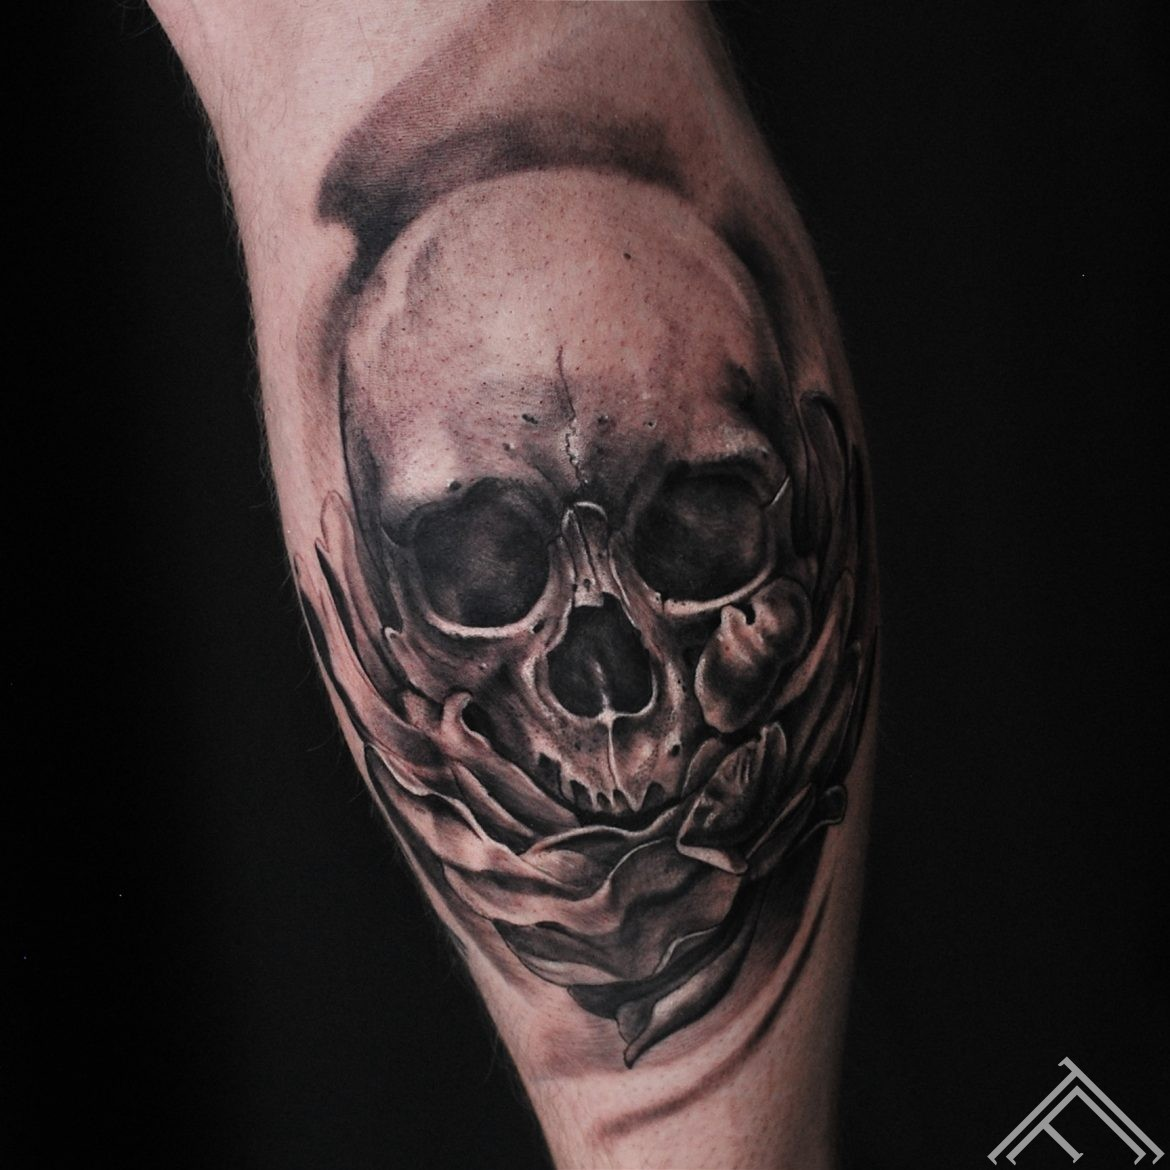 sasha-tattoo-tattoofrequency-riga-skull